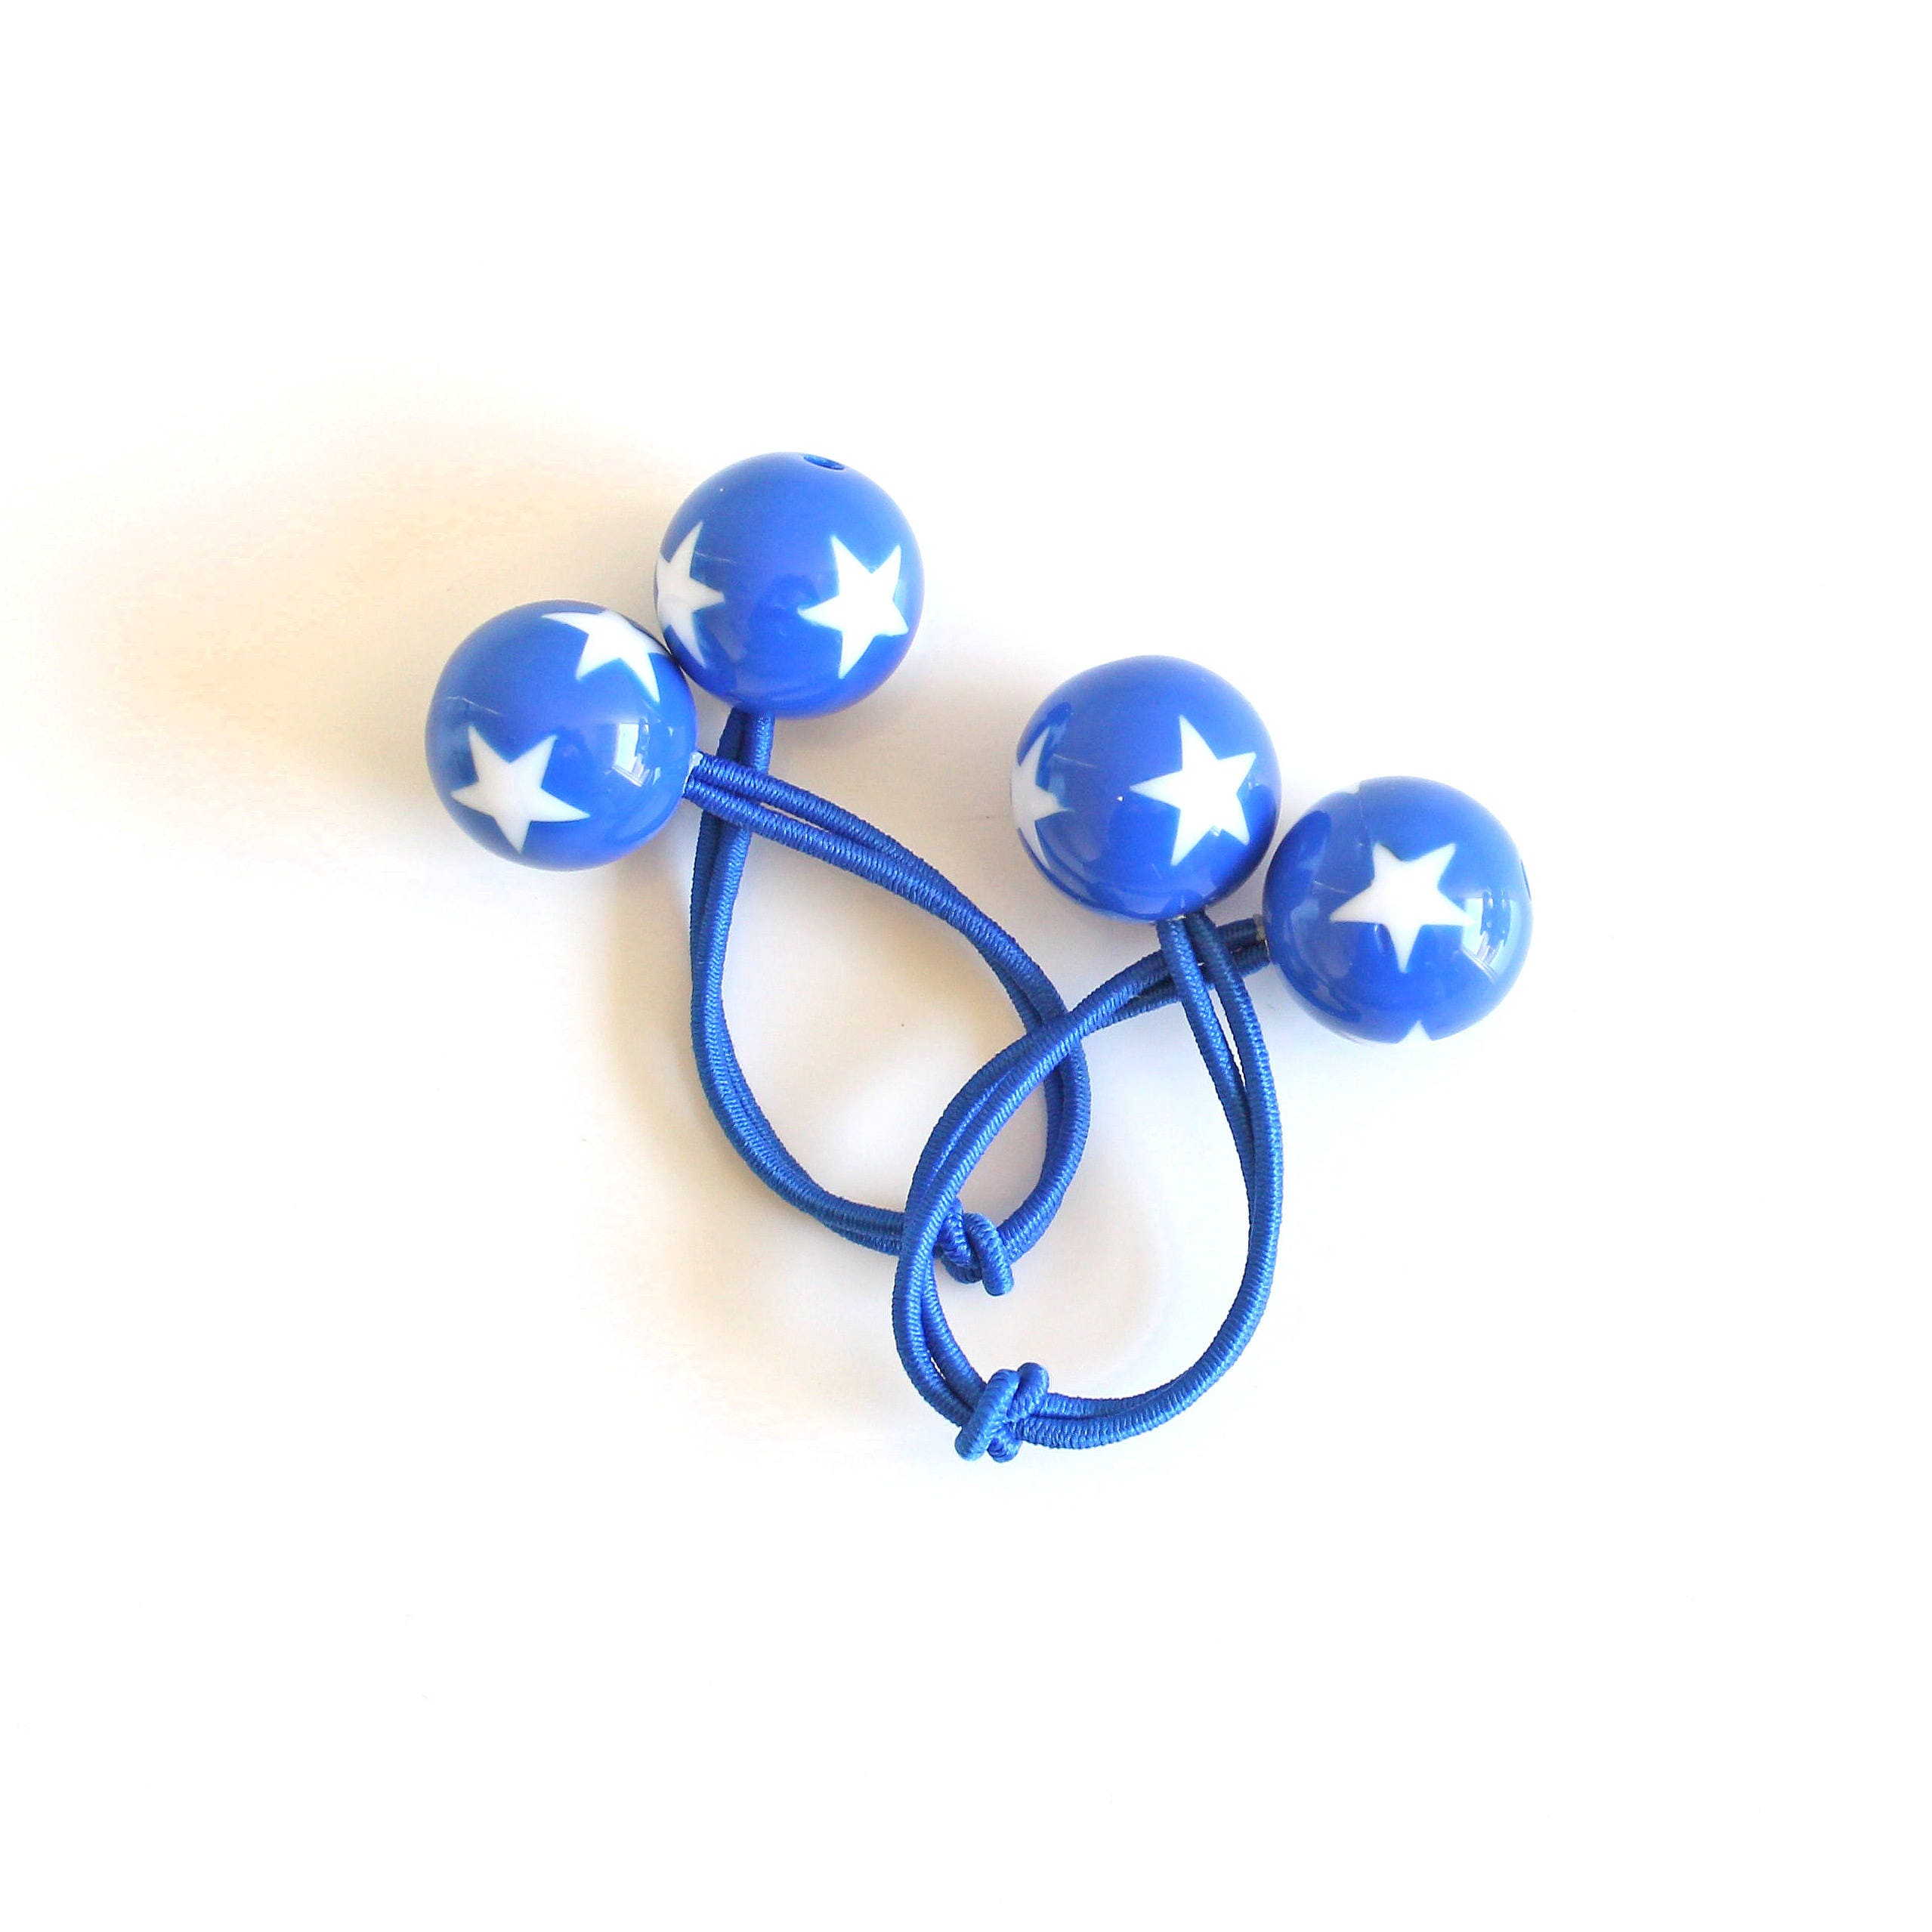 BLUE STARS. Bobble Hair ties. Elastic hair ties. Blue with white stars ... 151173ea0d4